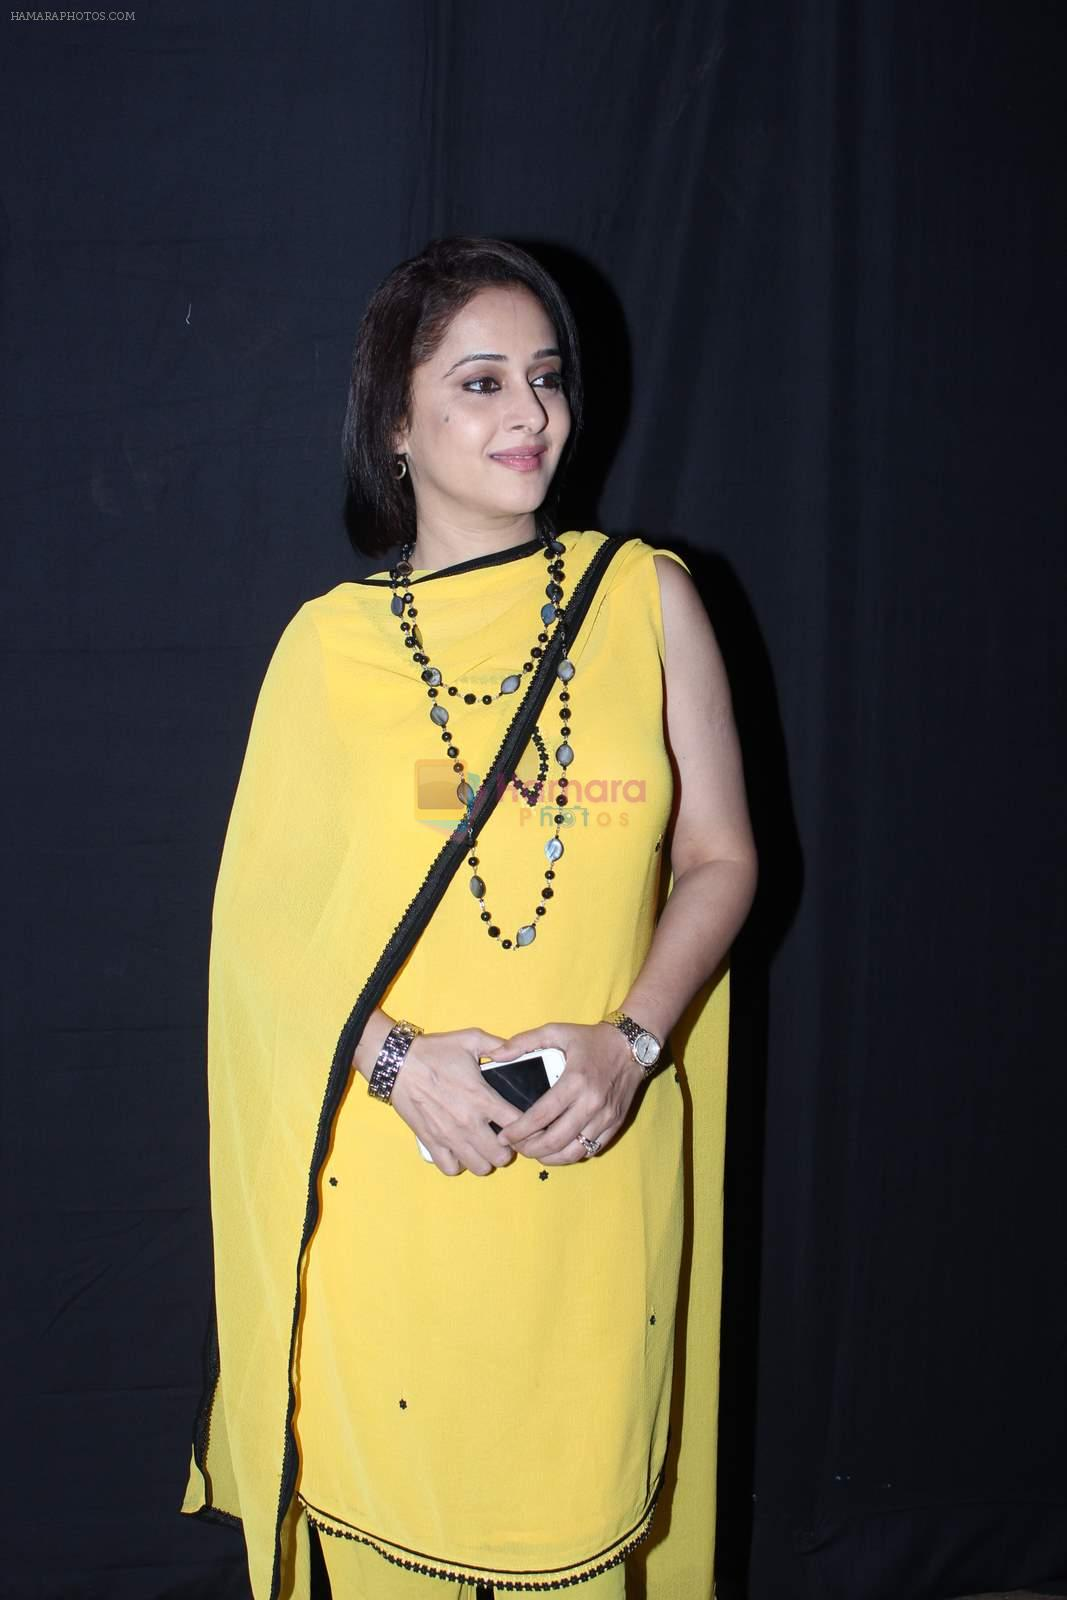 Mrinal kulkarni at Marathi film Siddhant music launch in The Club on 27th April 2015